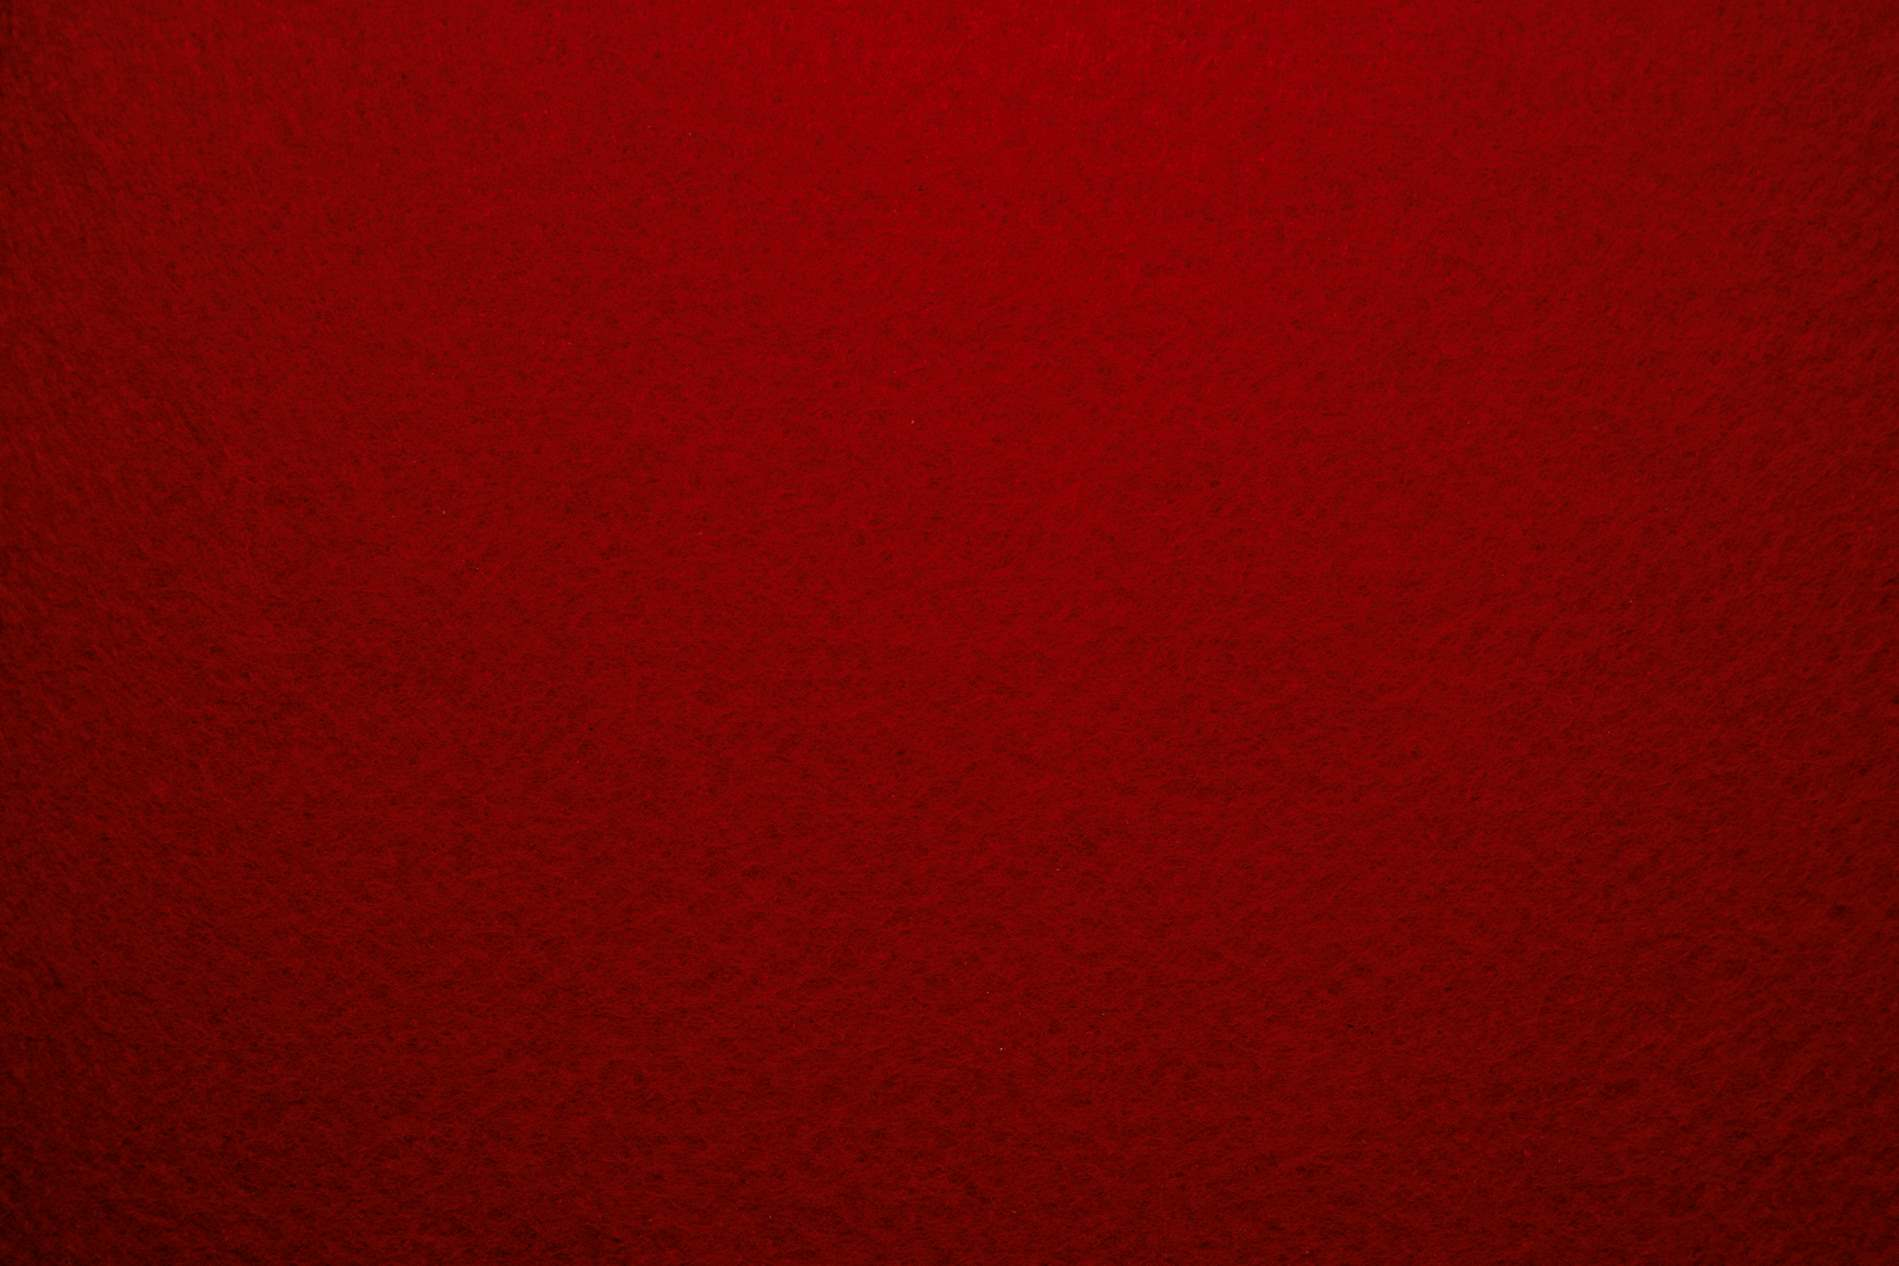 red fabric background texture photohdx